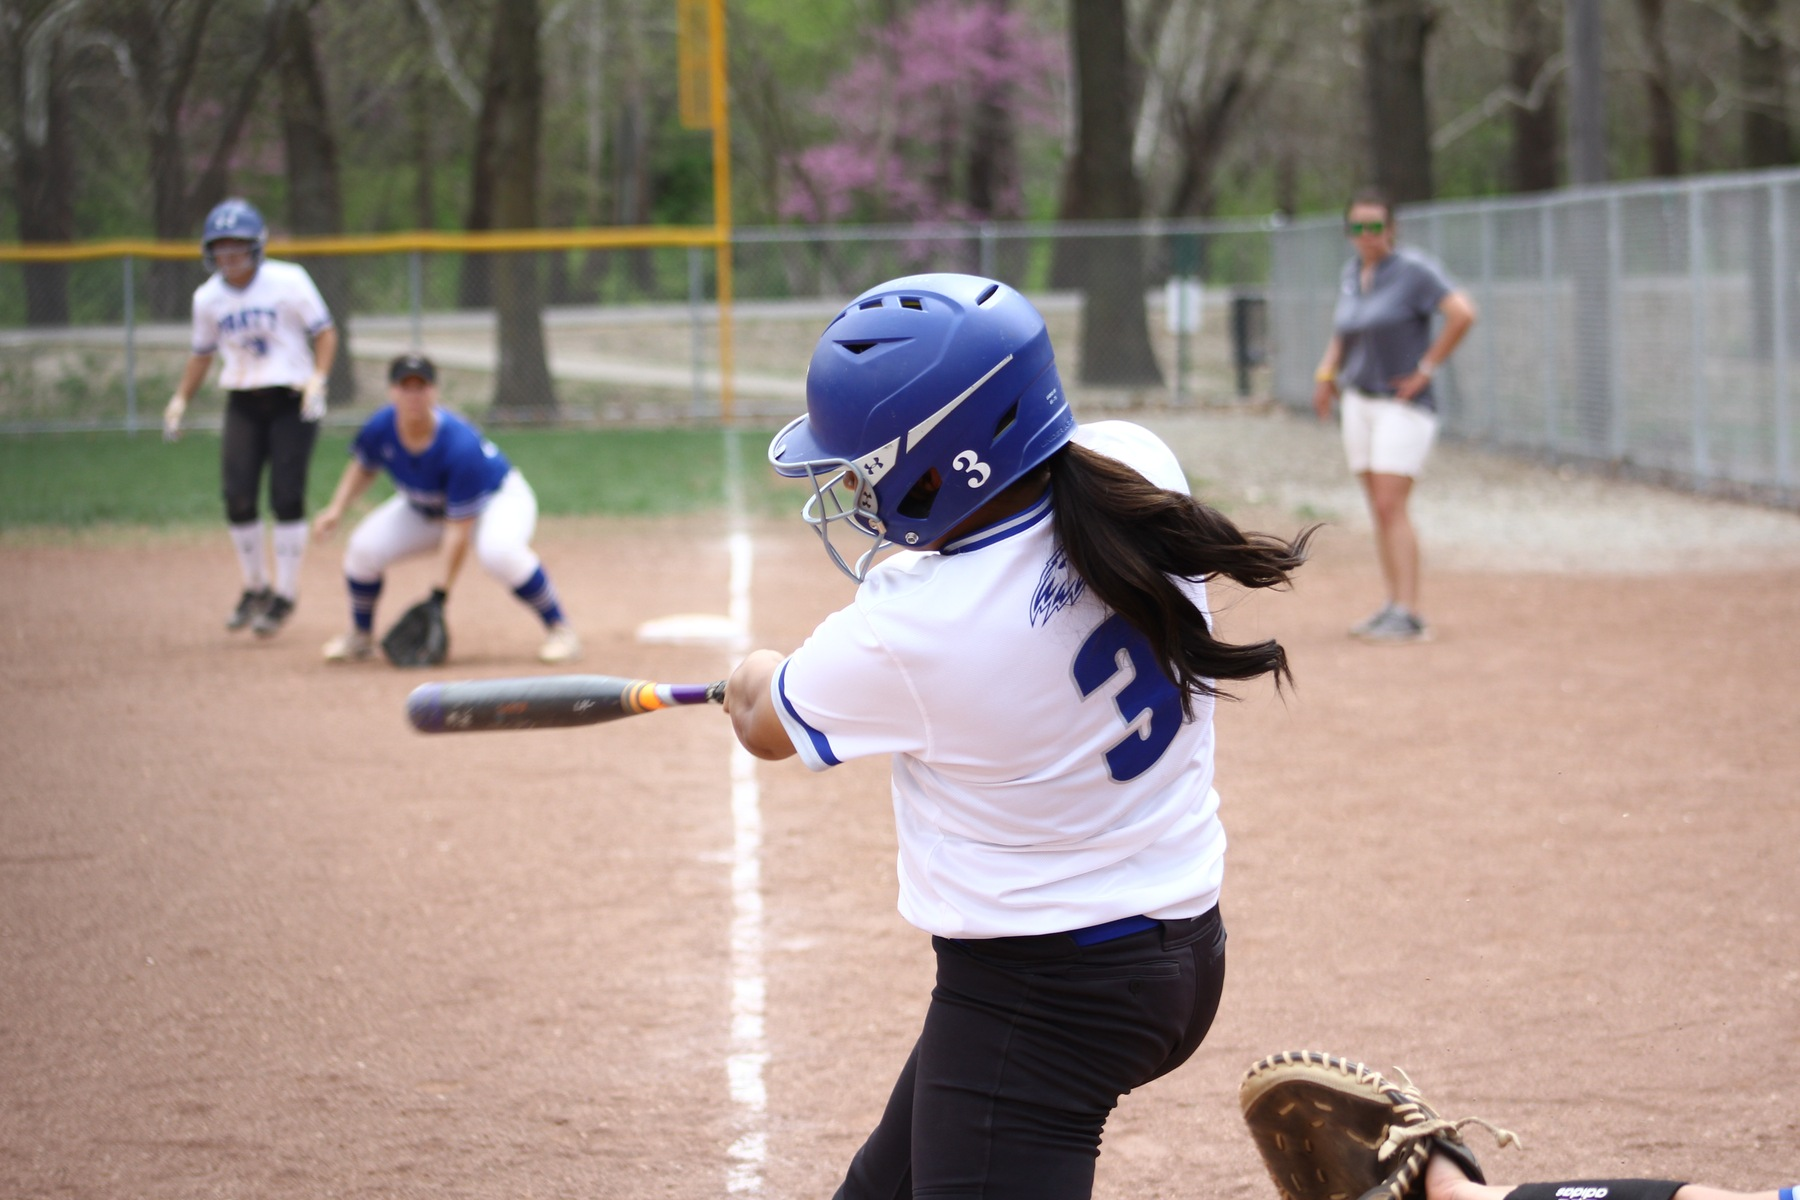 PCC softball ends season 4-21 in Conference